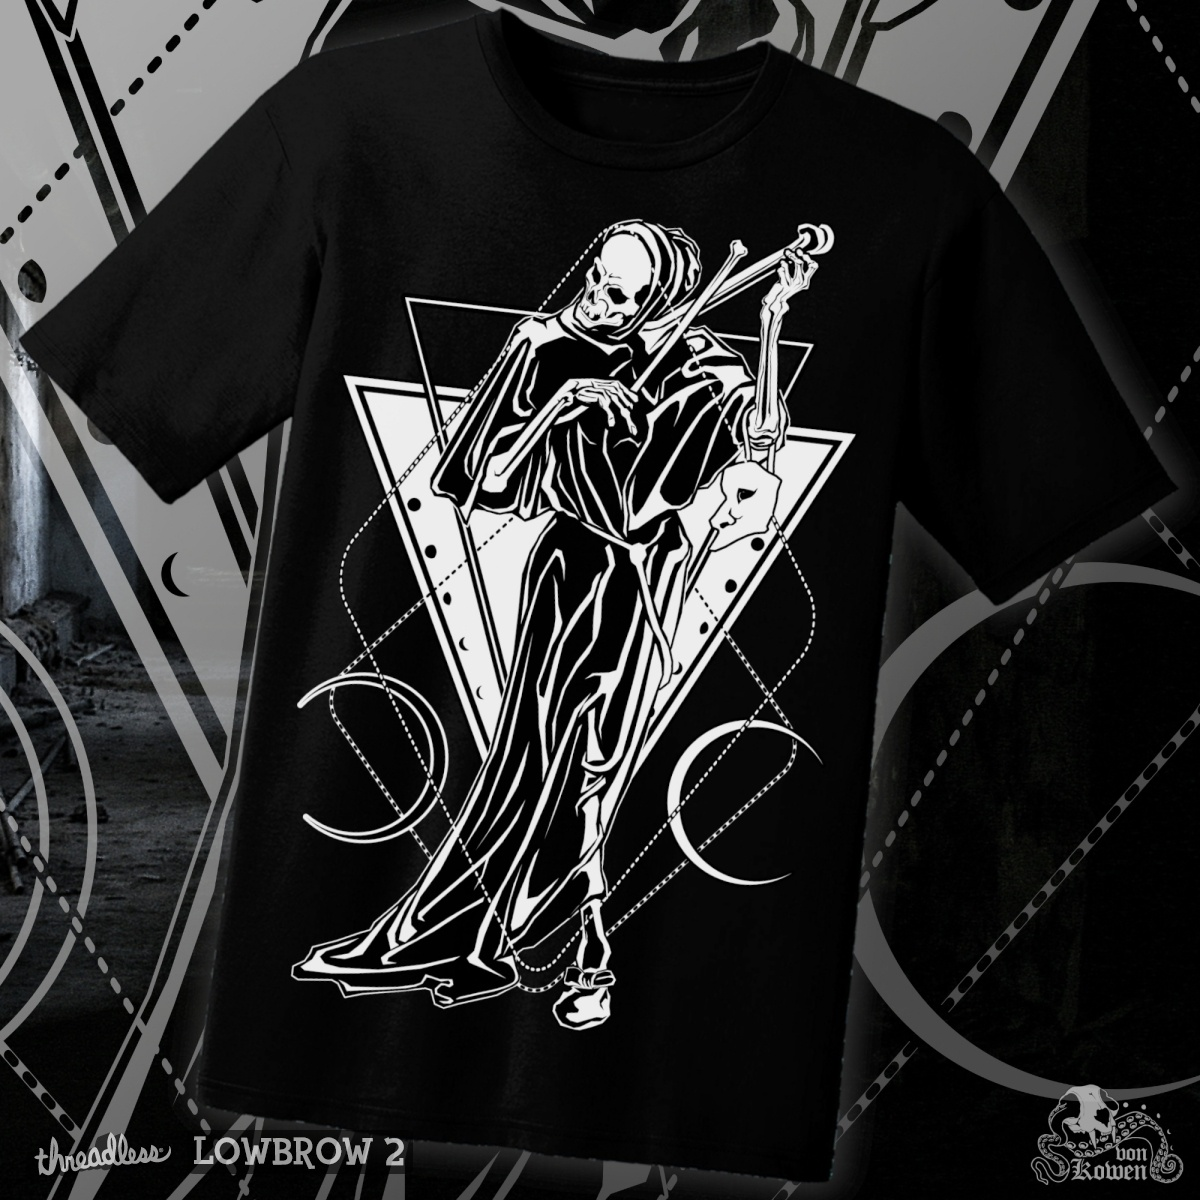 Death as a strangler, a cool t-shirt design